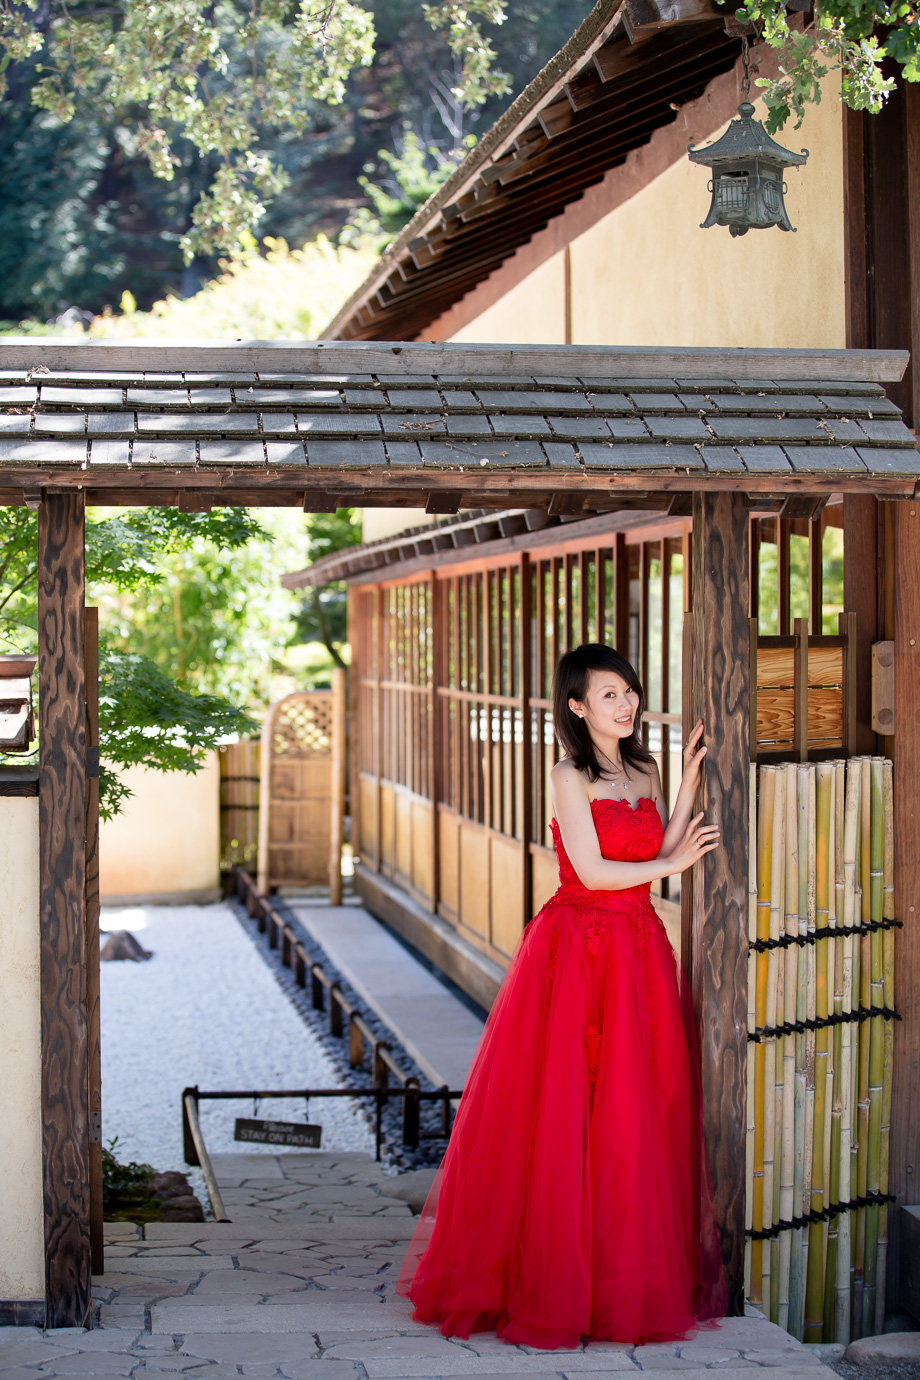 Renee in a sharp red dress leaning on a Japanese-style doorway at Hakone Gardens